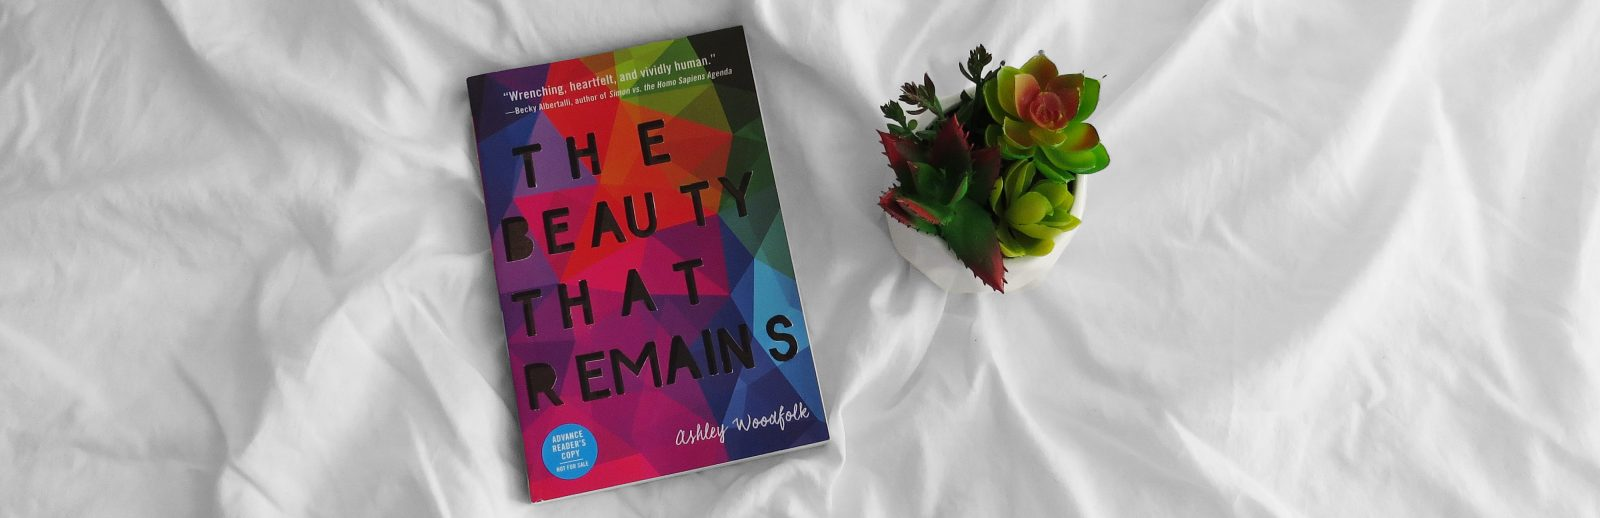 ARC Review | The Beauty that Remains by Ashley Woodfolk